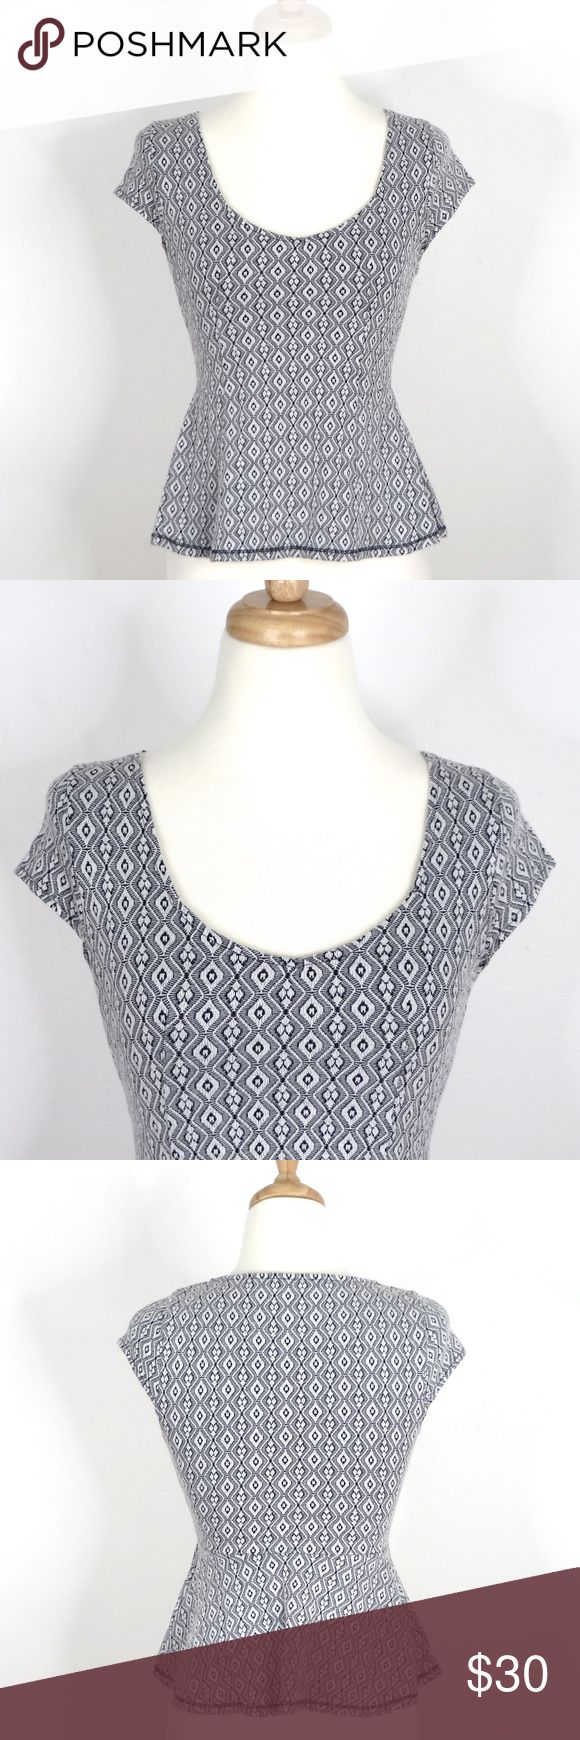 """POSTAGE STAMP Excellent condition and no defects.  Black white gray geometric print, wide scoop neck, short cap sleeves, peplum silhouette, cotton blend knit.  Approximately 15.25"""" across armpit seam to armpit seam (pictured) and 20"""" long.   Purchased at Anthropologie.  Automatically reduce price 20% for + bundles. Anthropologie Tops Tees - Short Sleeve"""